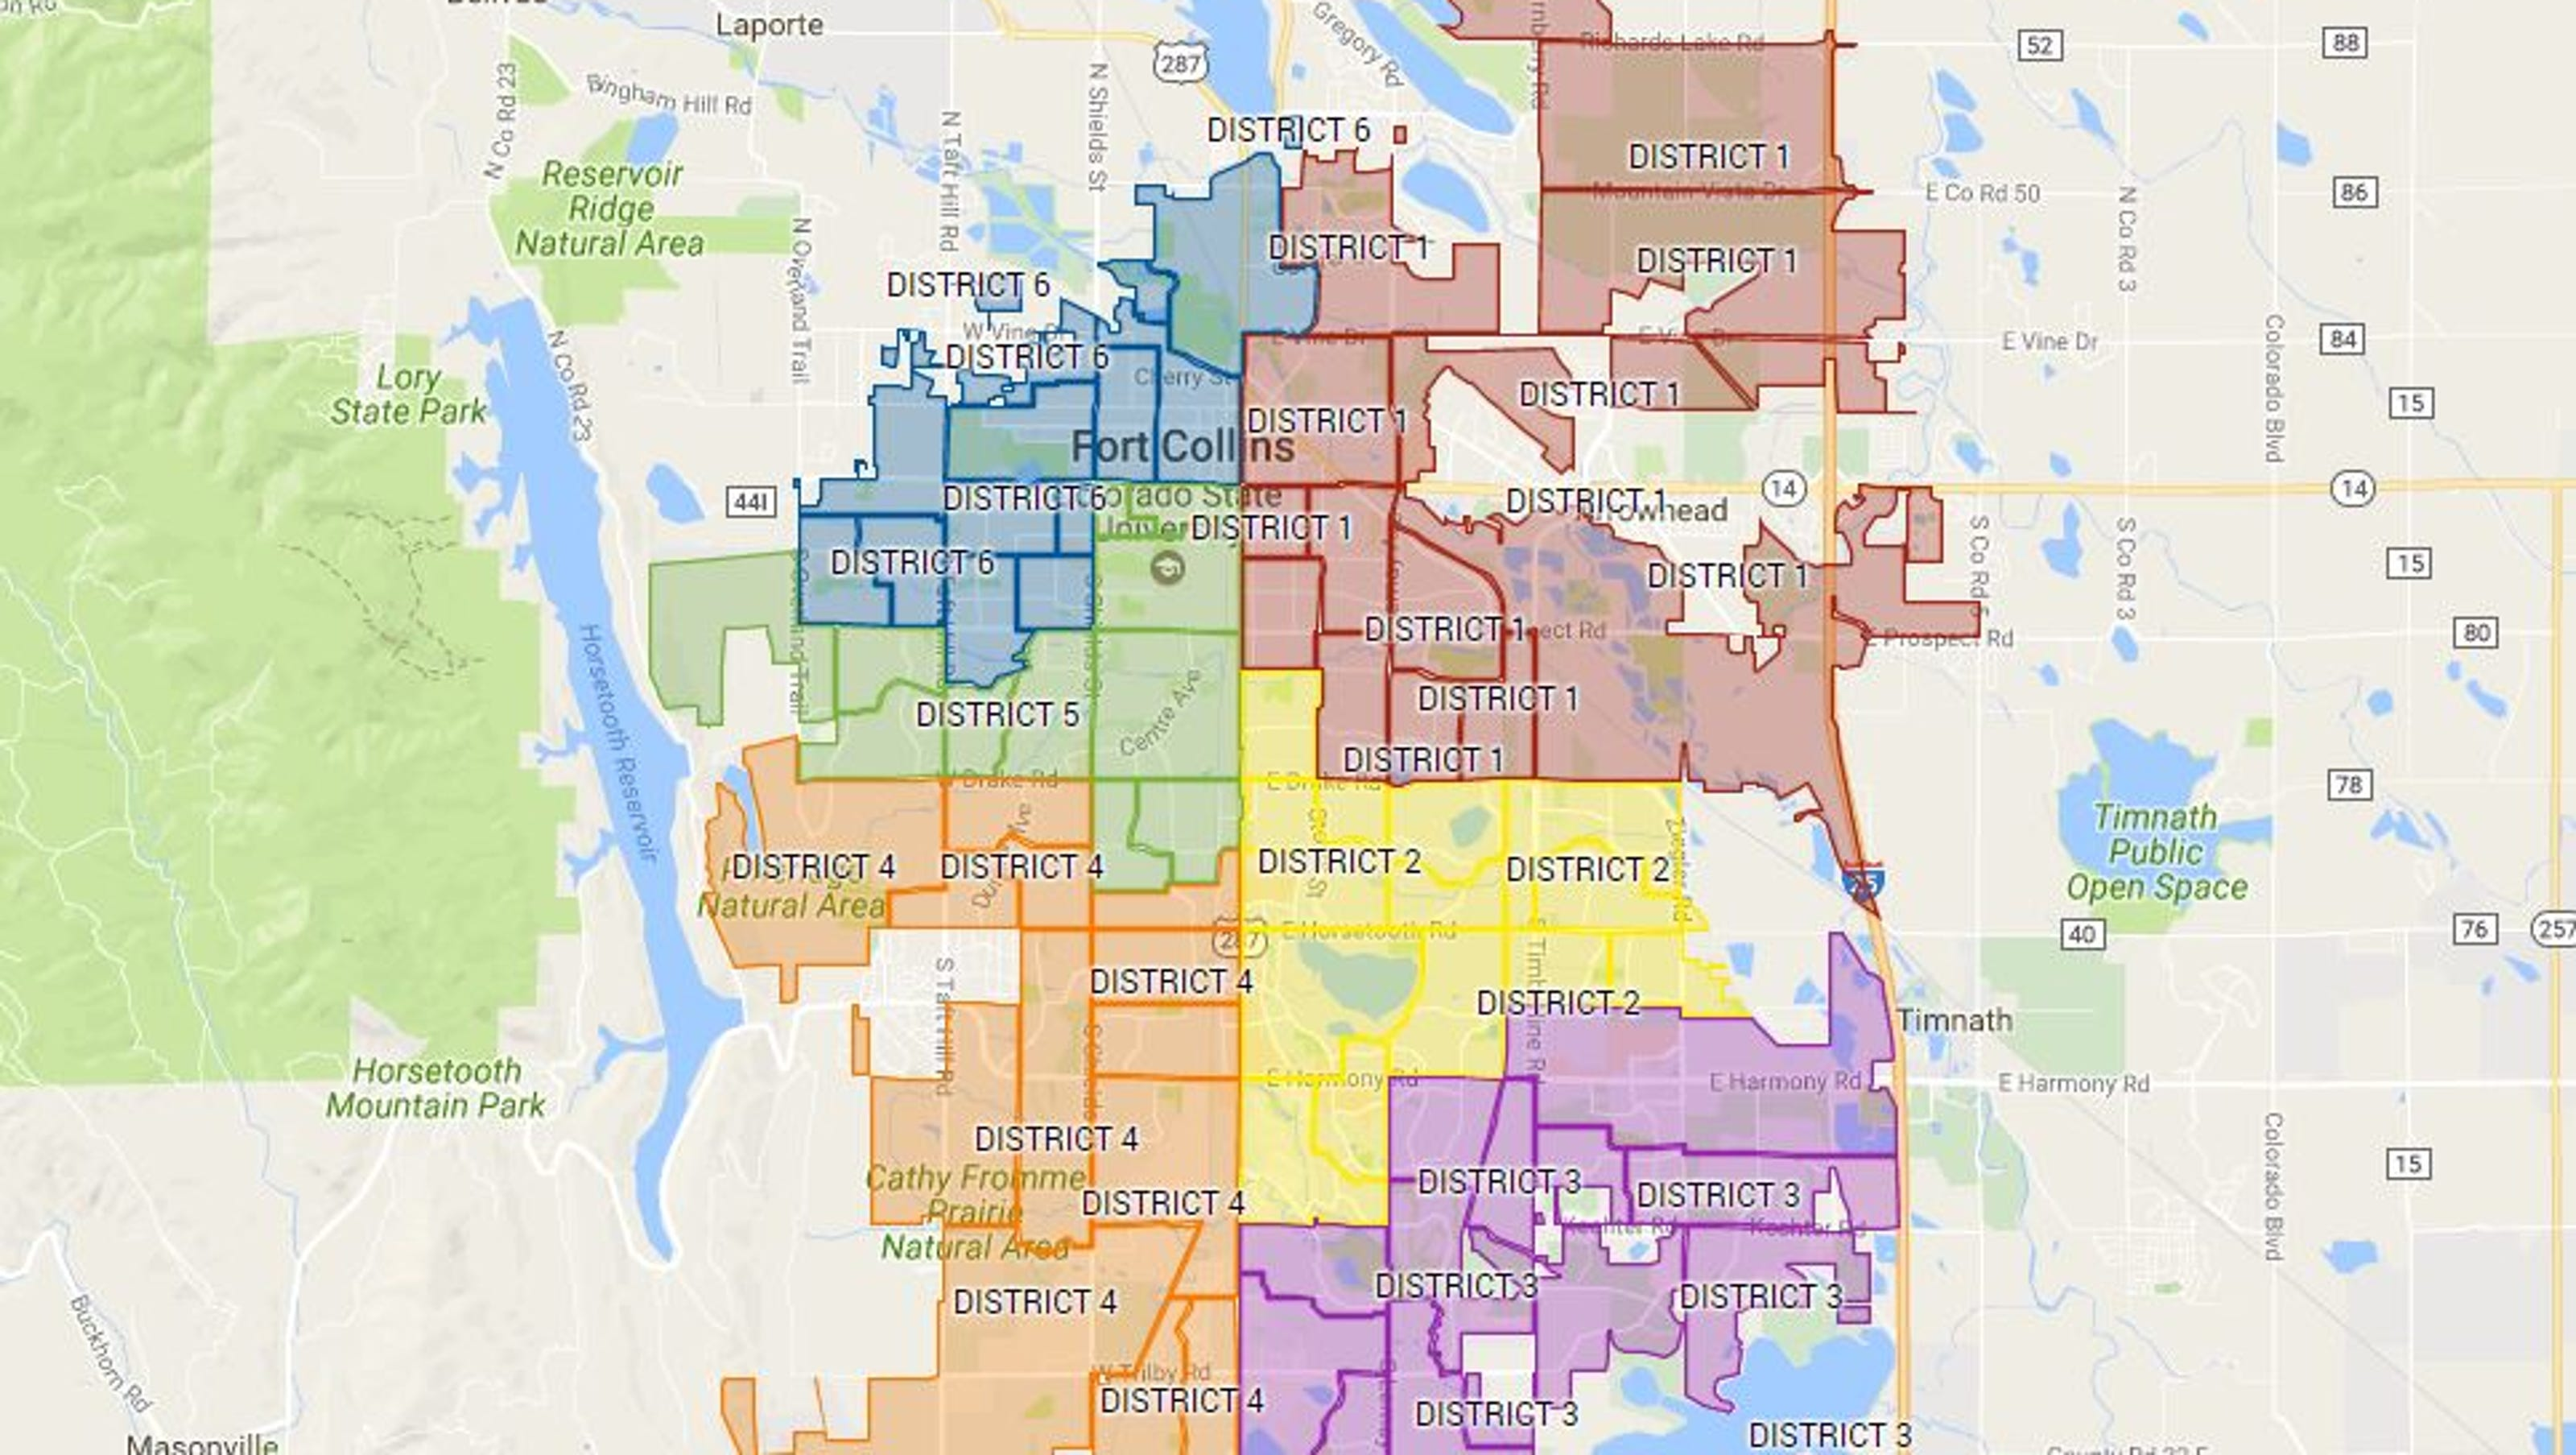 Map Of Fort Collins Map: Fort Collins City Council Districts Map Of Fort Collins